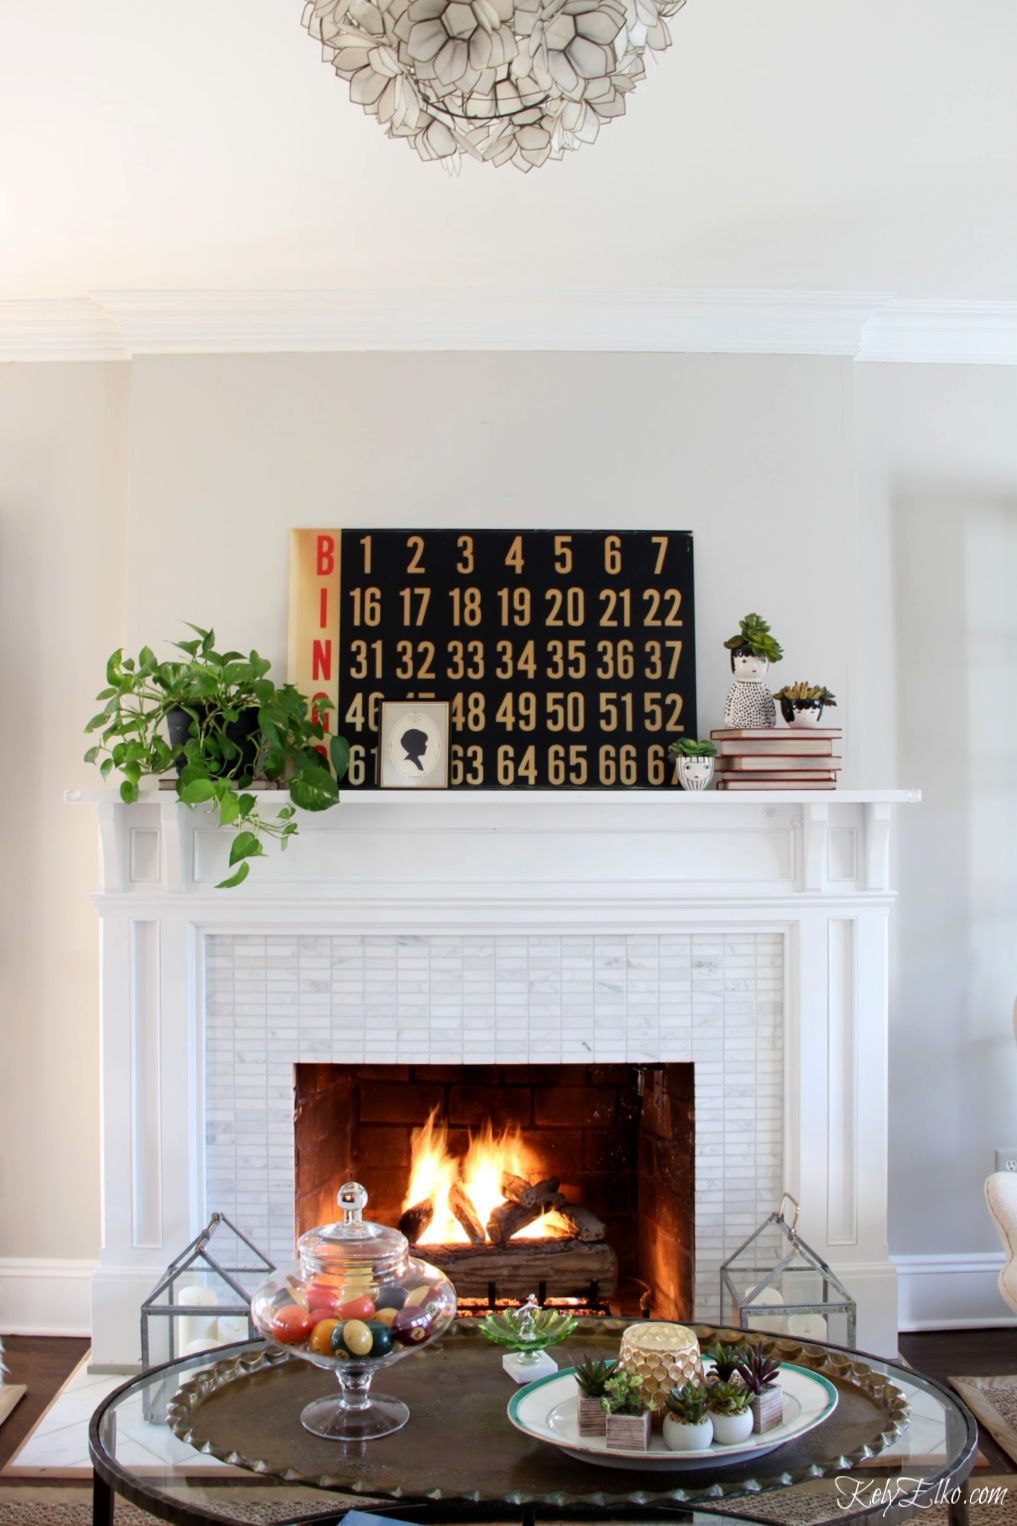 Vintage modern mantel decor - love the huge old bingo board and black white red and green color palette kellyelko.com #mantel #manteldecor #vintagedecor #vintagemantel #wintermantel #vintagedecorating #thriftedecor #thriftydecor #plantlady #houseplants #succulents #farmhousemantel #farmhousedecor #eclecticdecor #fireplacedecor #kellyelko